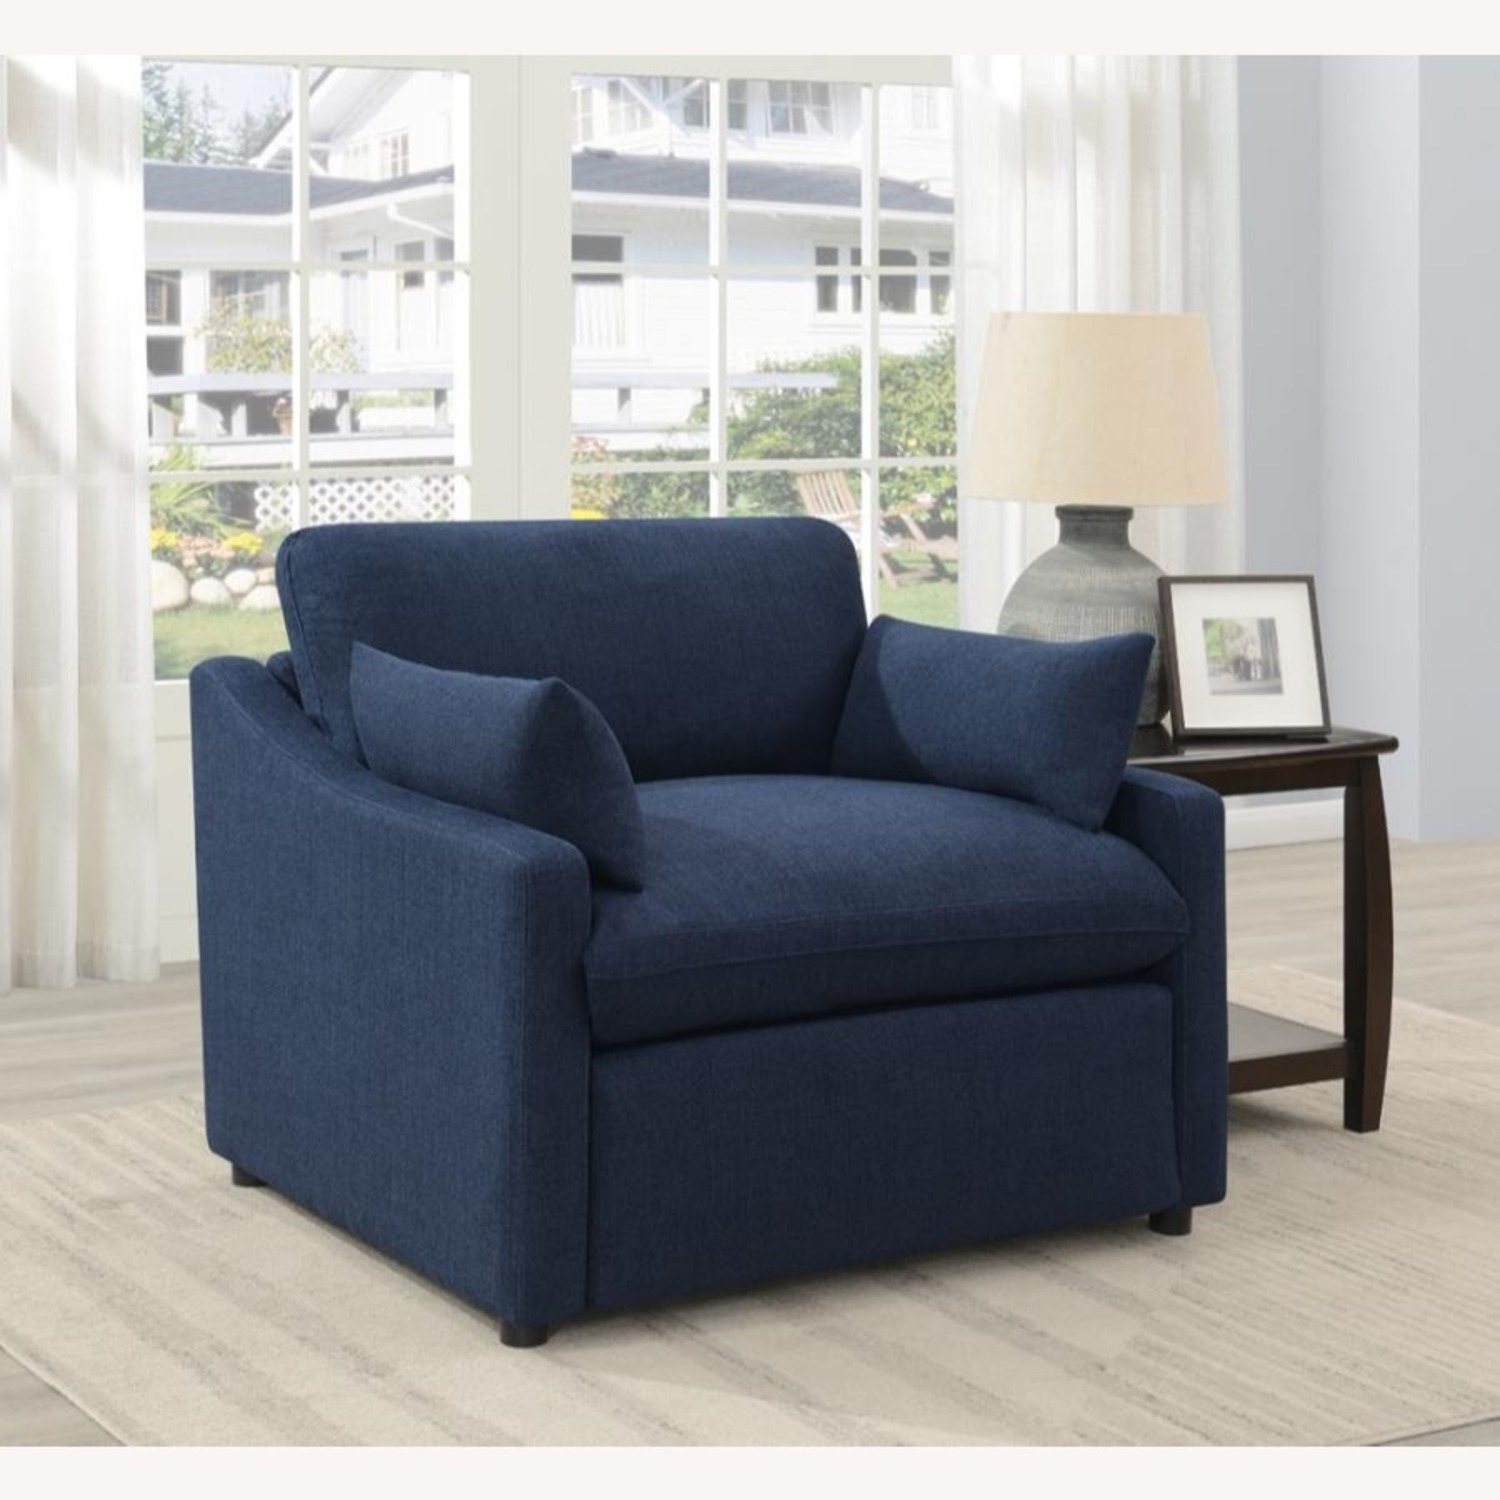 Power Recliner In Linen-Like Midnight Blue Fabric - image-3